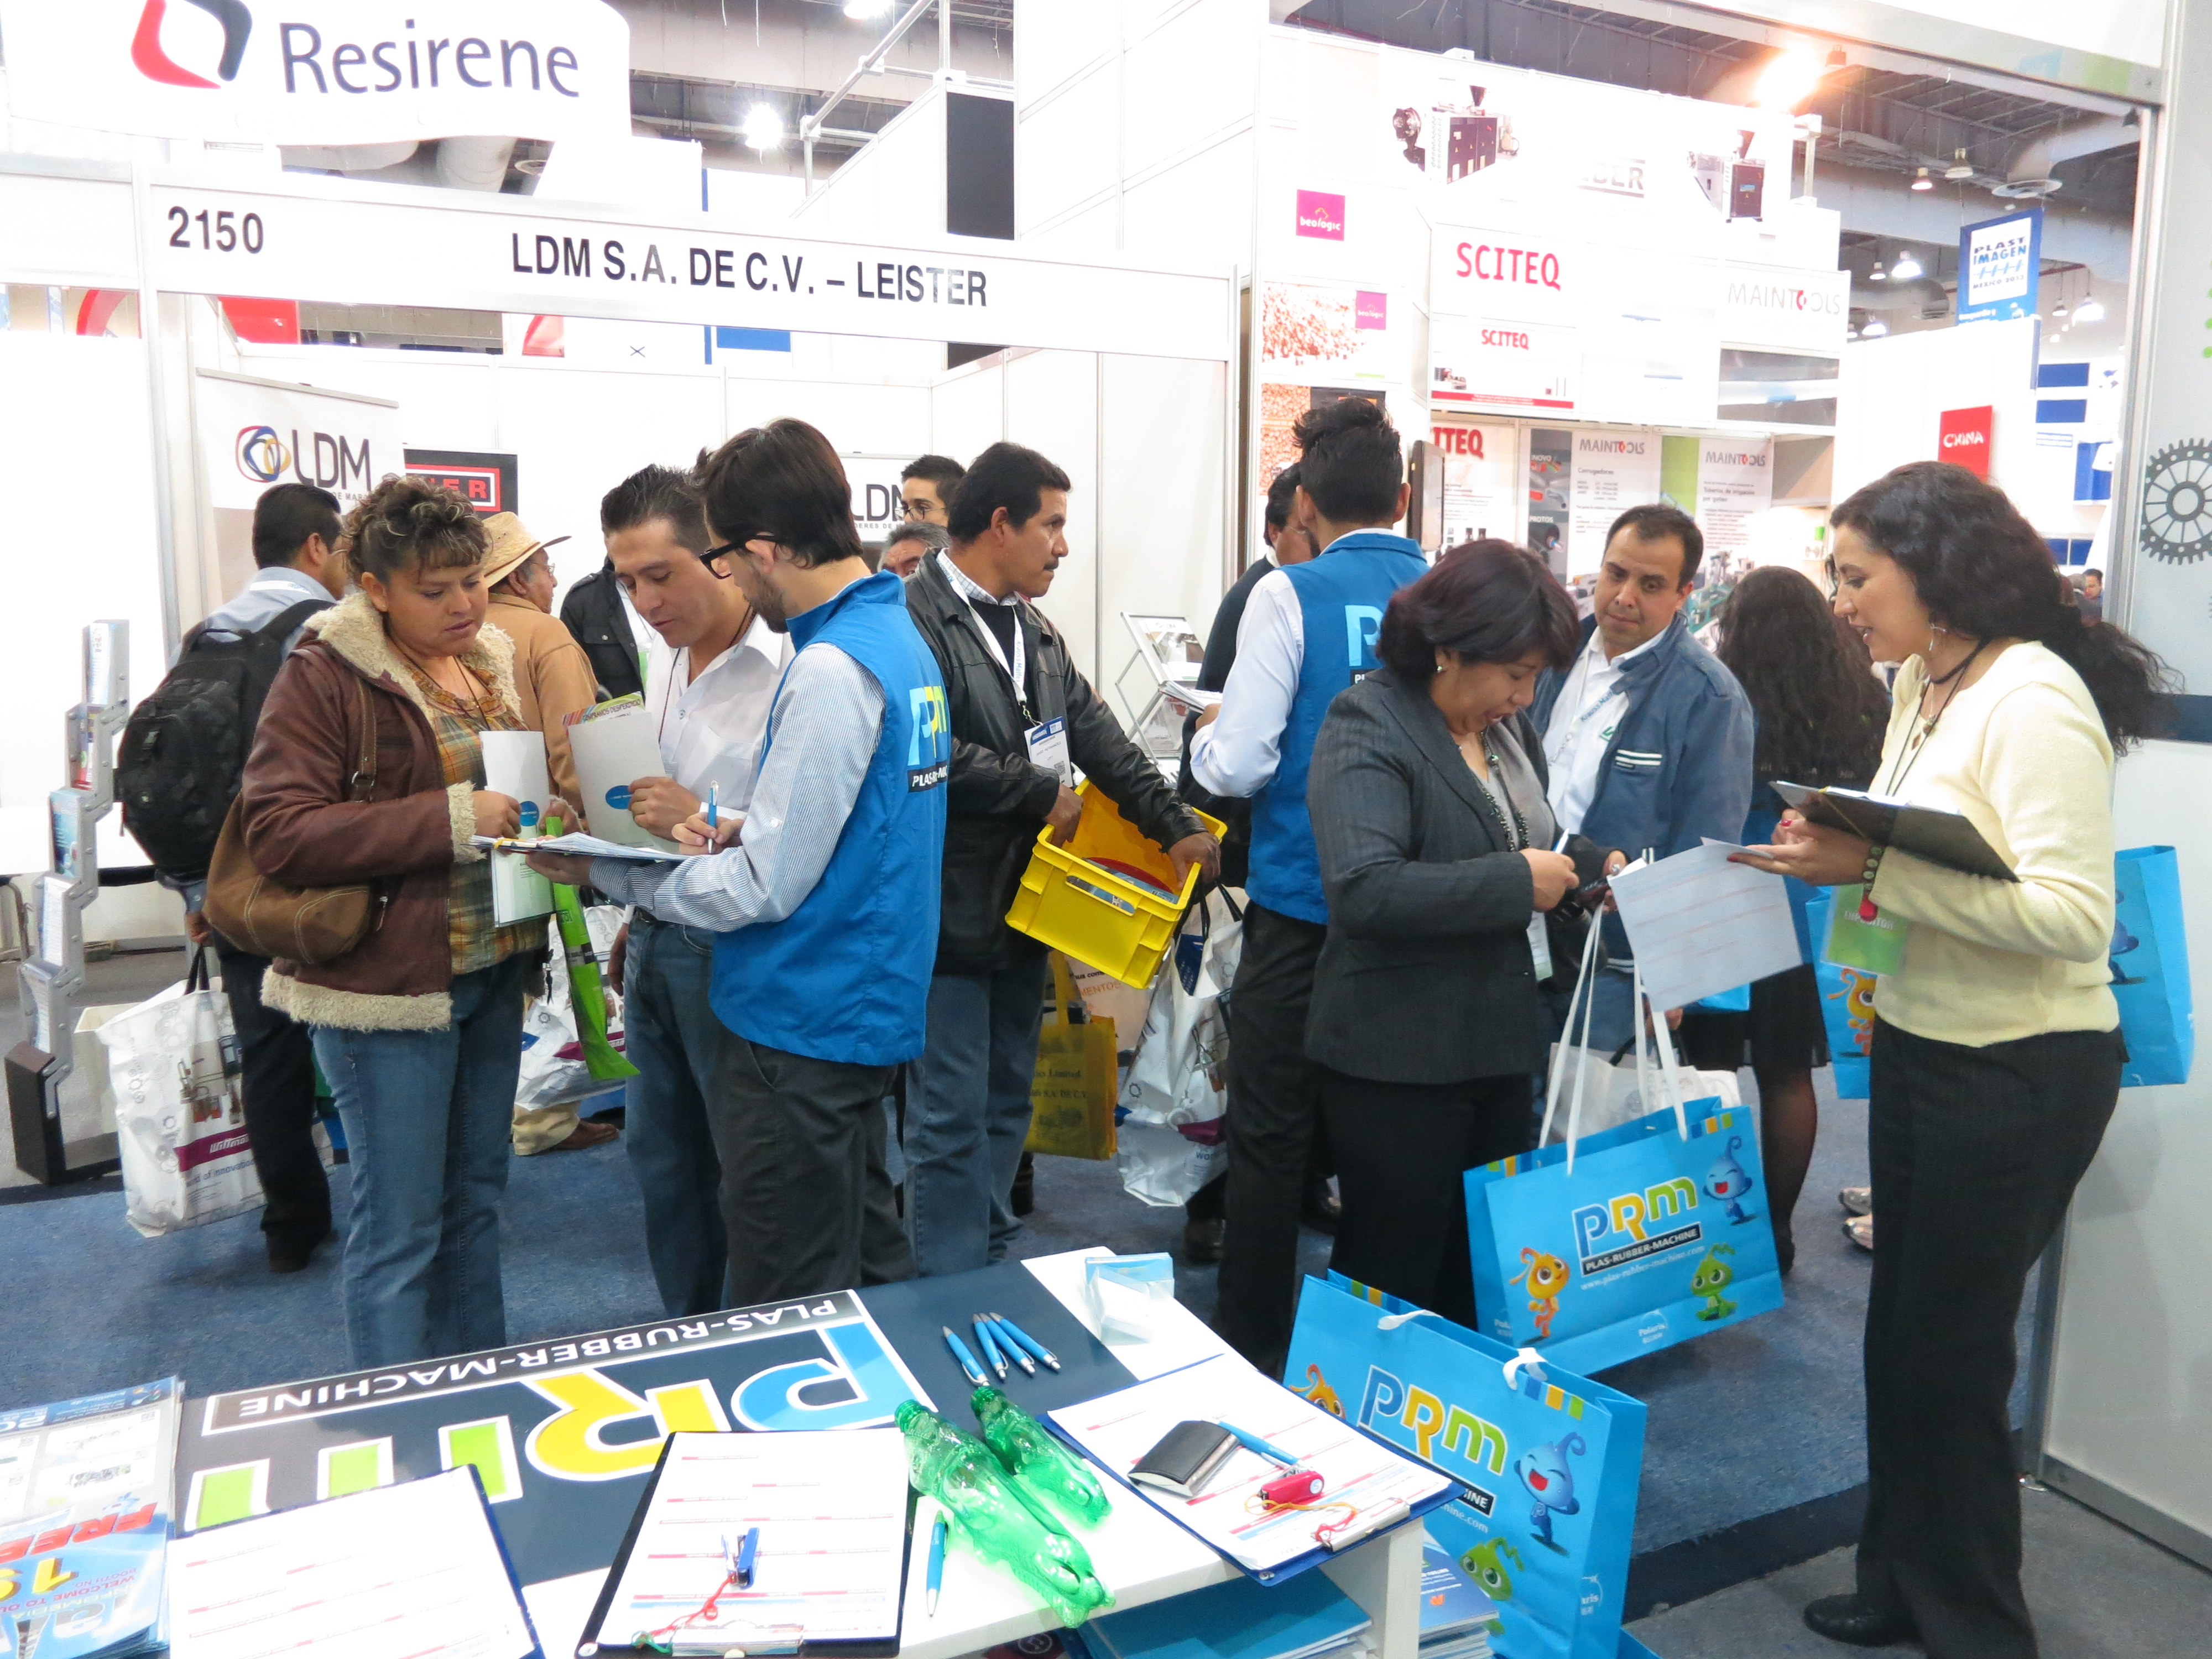 Crowded PRM Booth